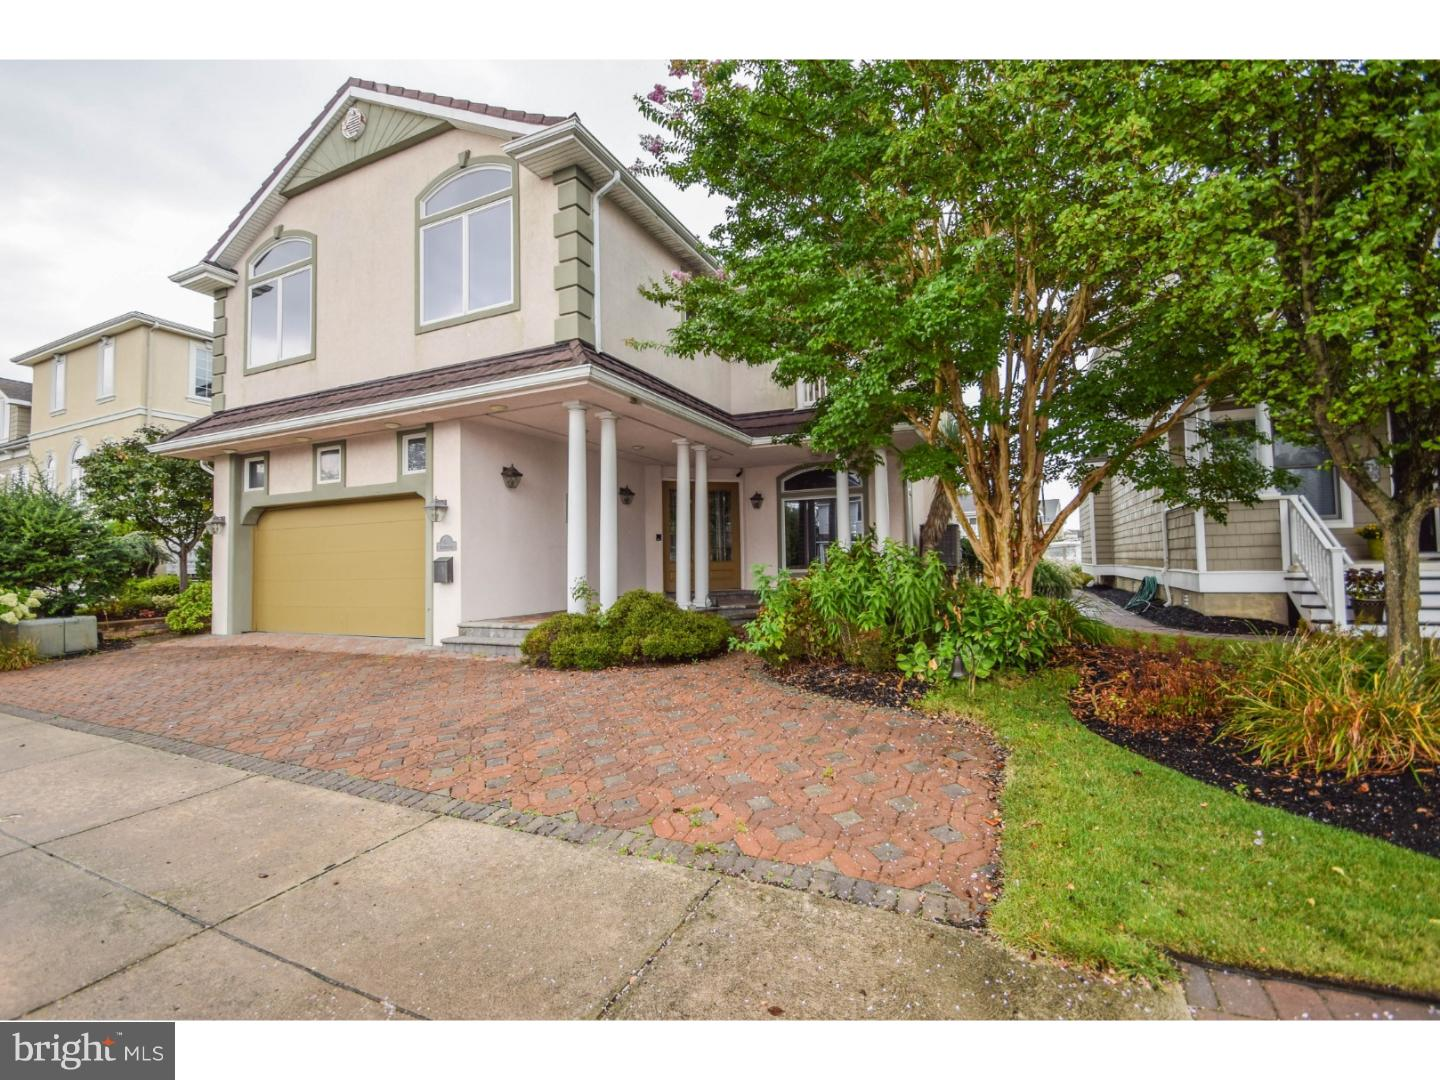 2019 GLENWOOD DRIVE, OCEAN CITY, NJ 08226